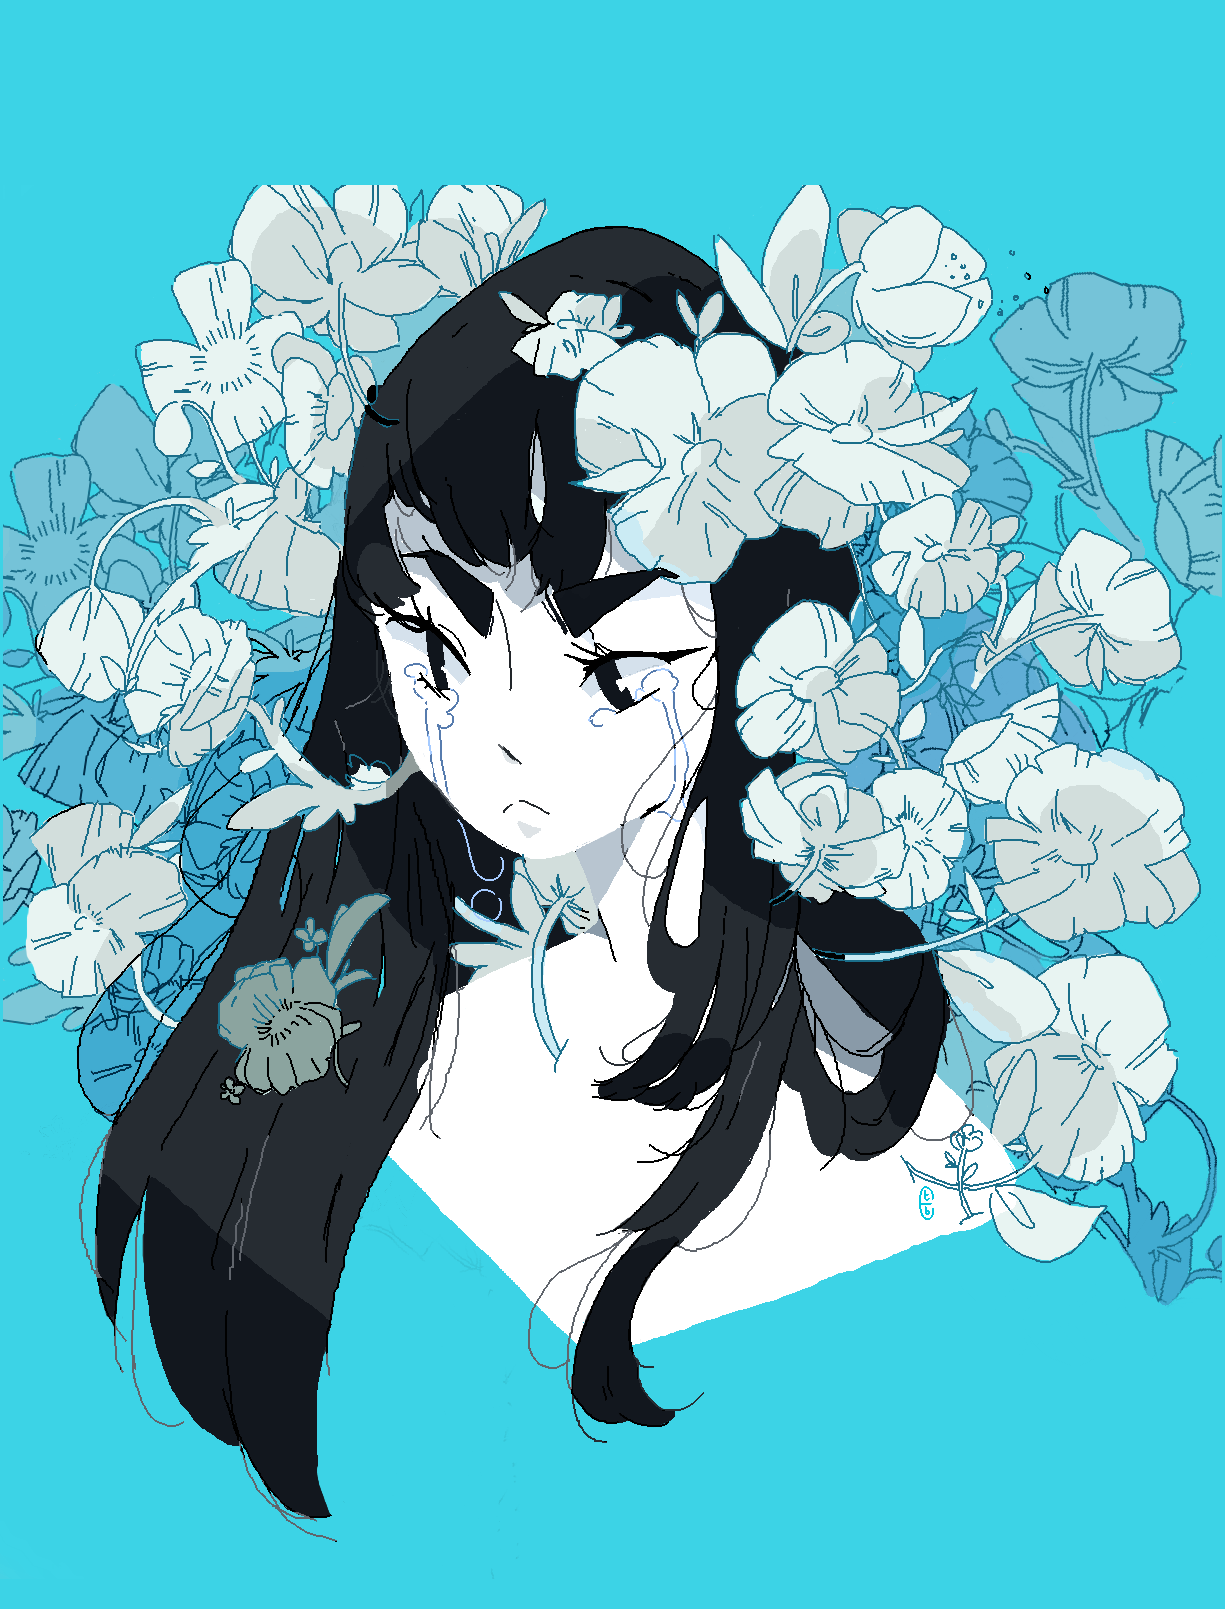 satsuki  flowers are my two favourite things